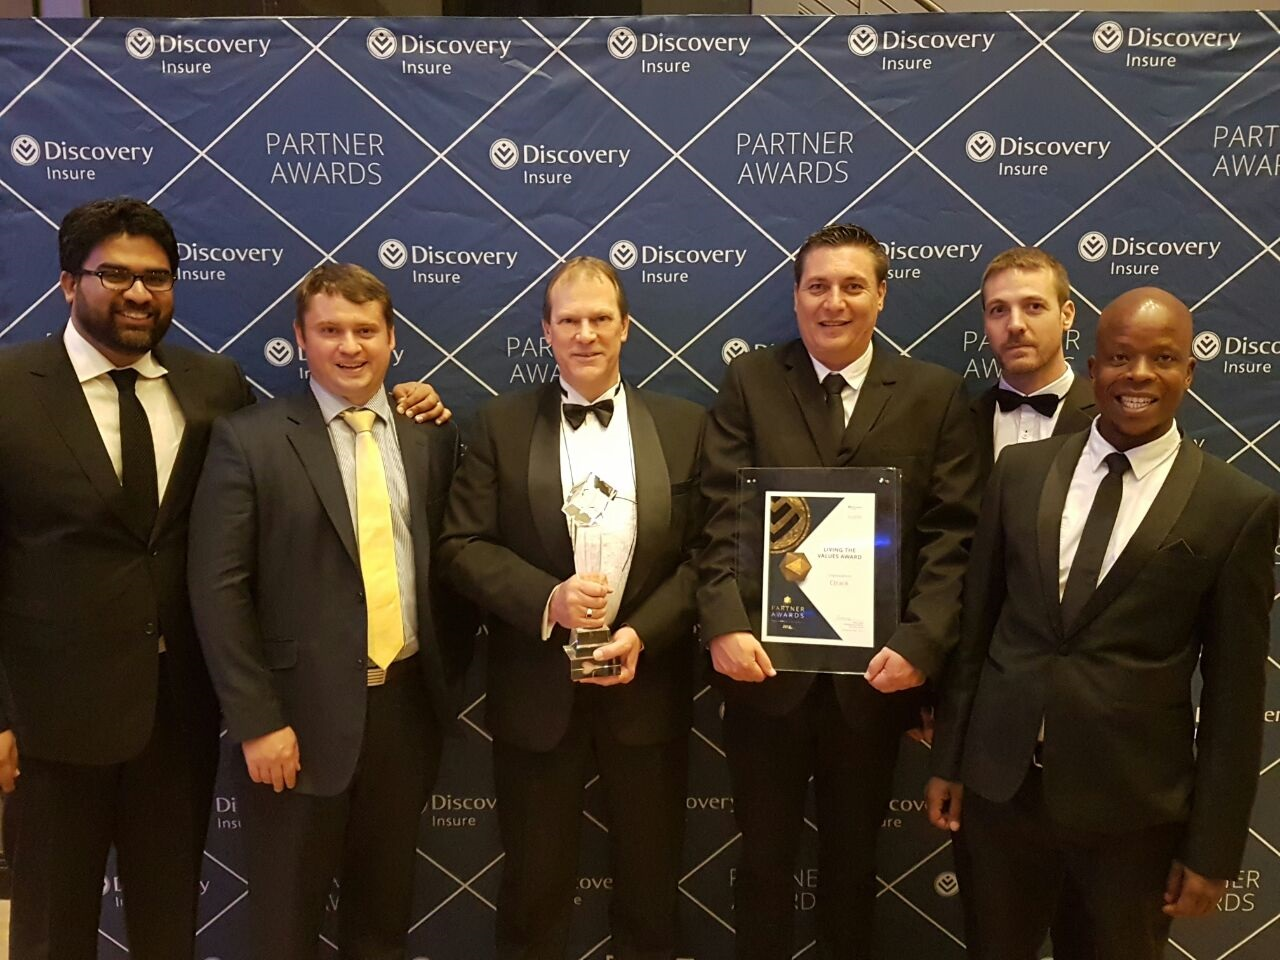 ctrack-wins-discovery-insure-values-award